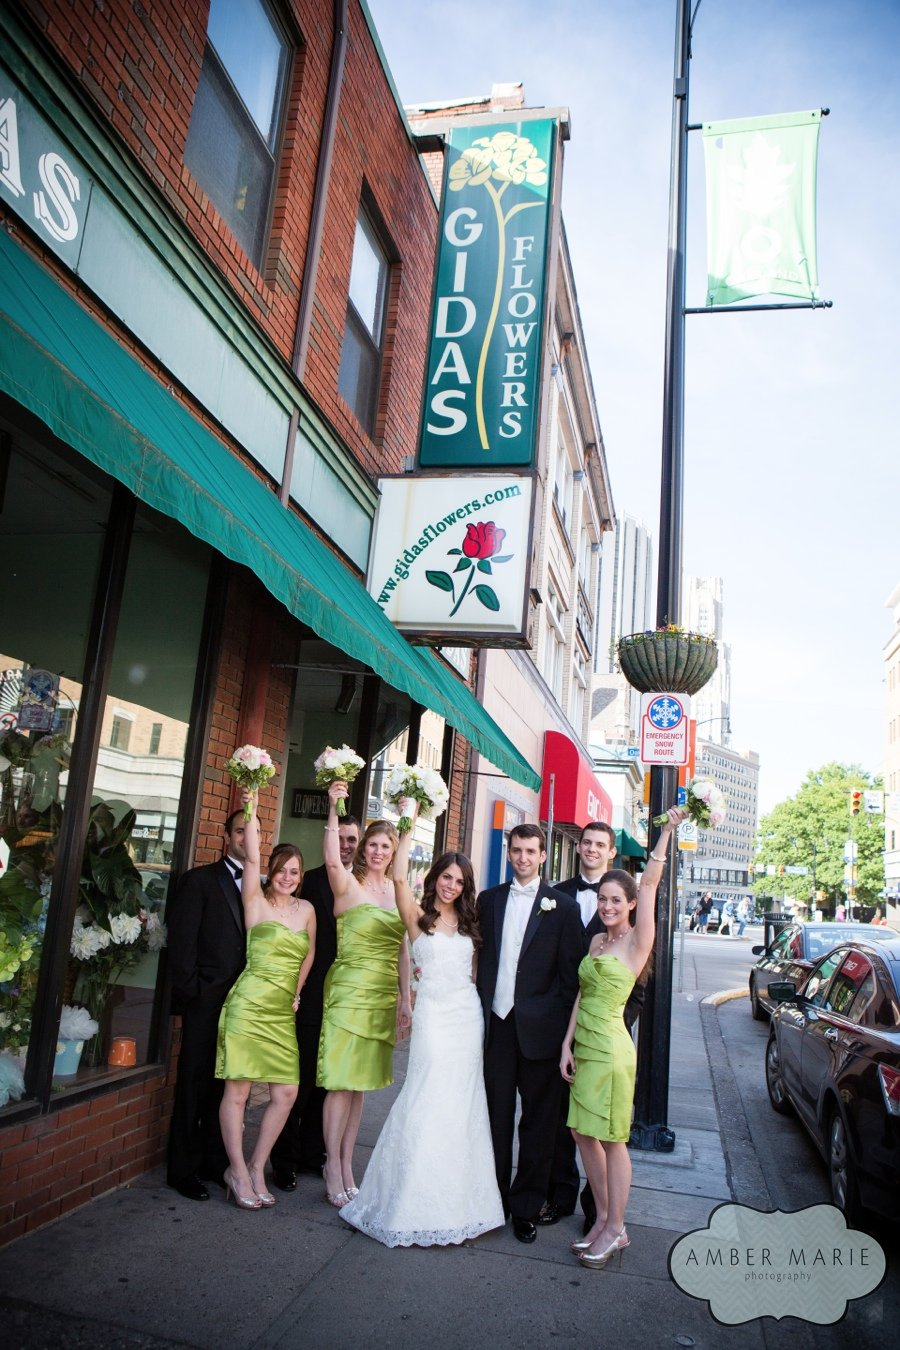 Bride and groom and wedding party at Gidas Flowers, the family business, in Pittsburgh.